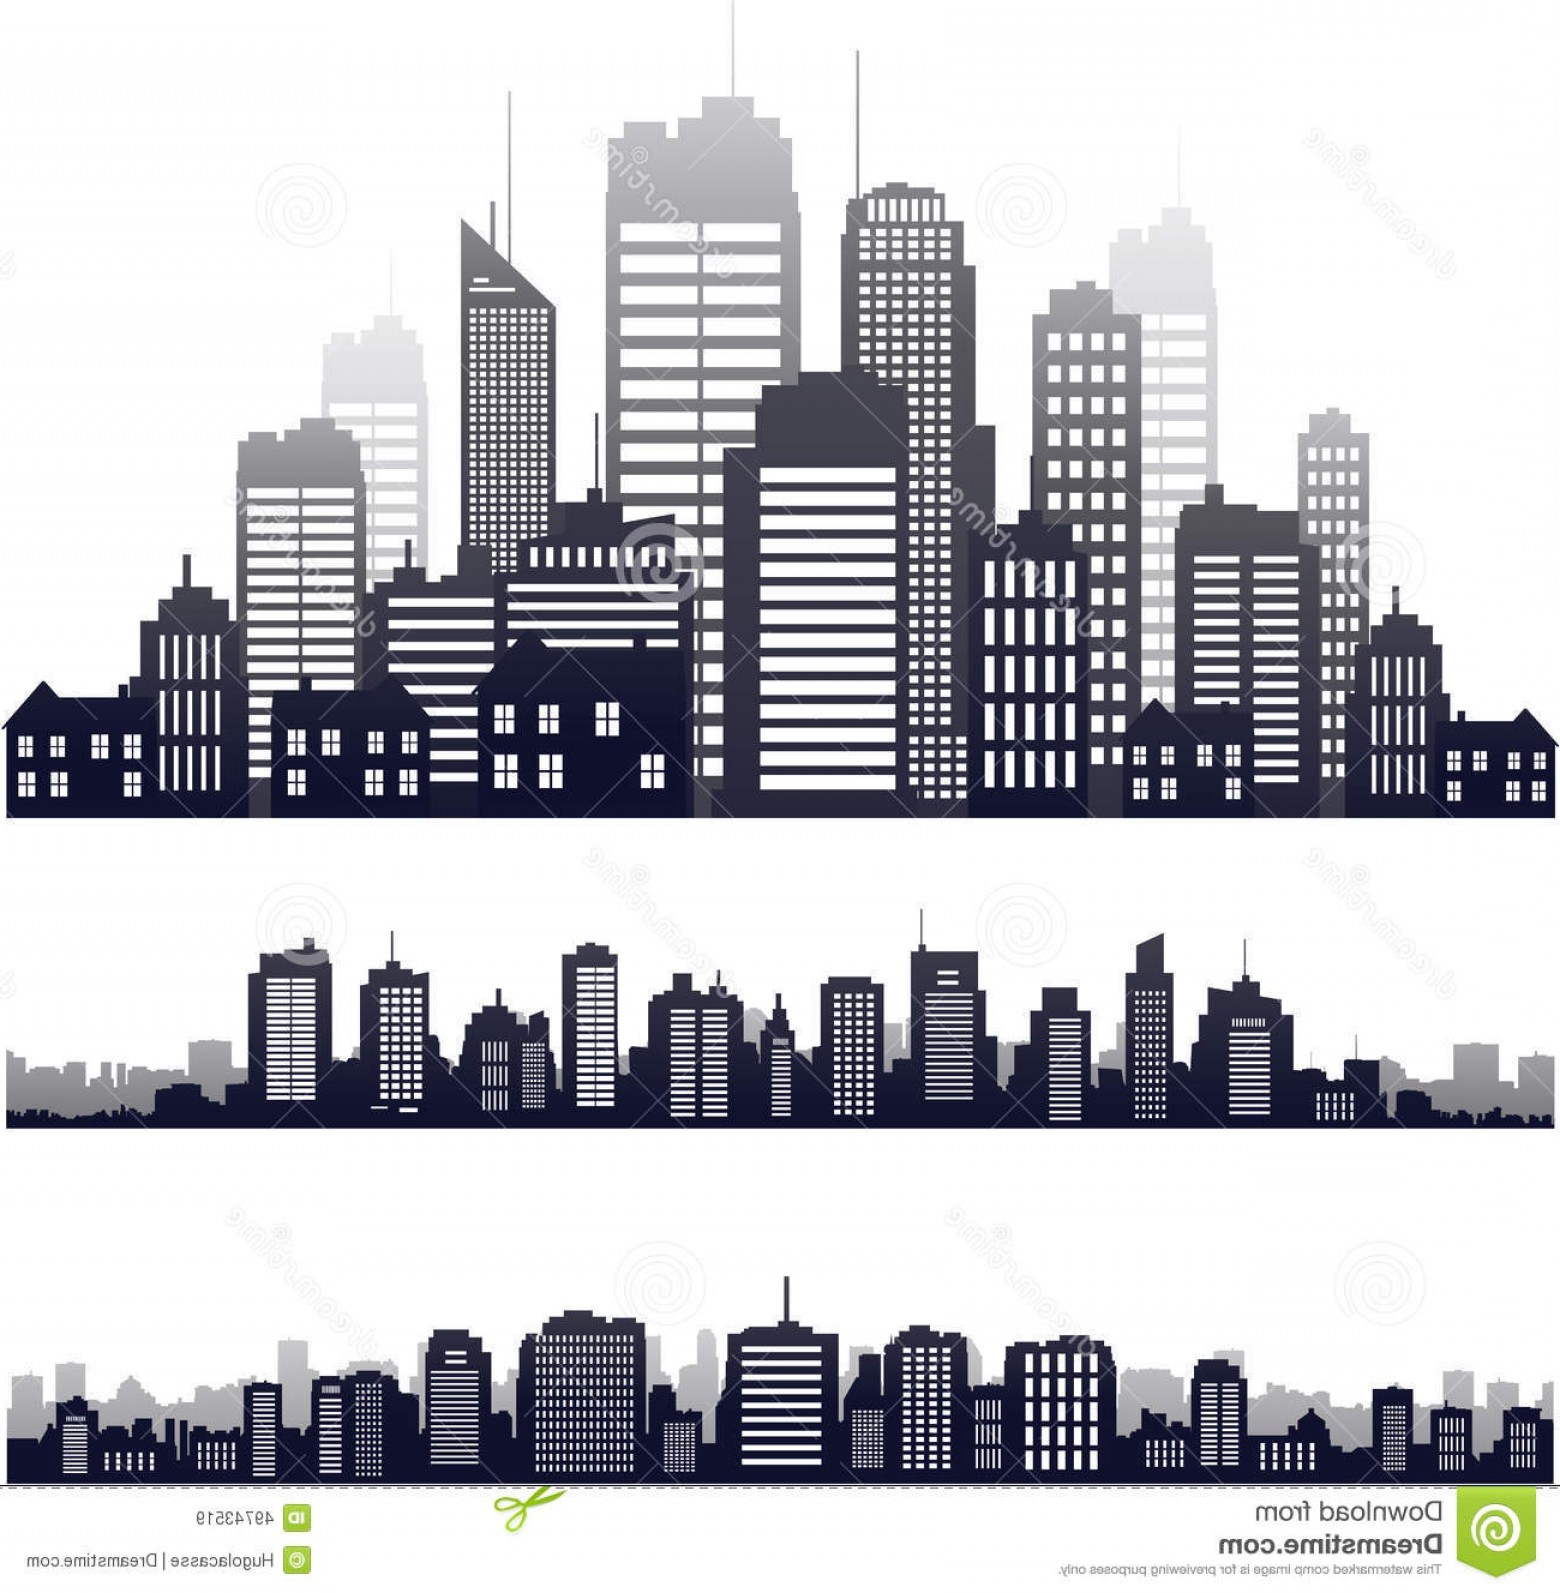 City Building Vector Free Download: Stock Illustration Vector City Silhouette Isolated White Building Skyline Image